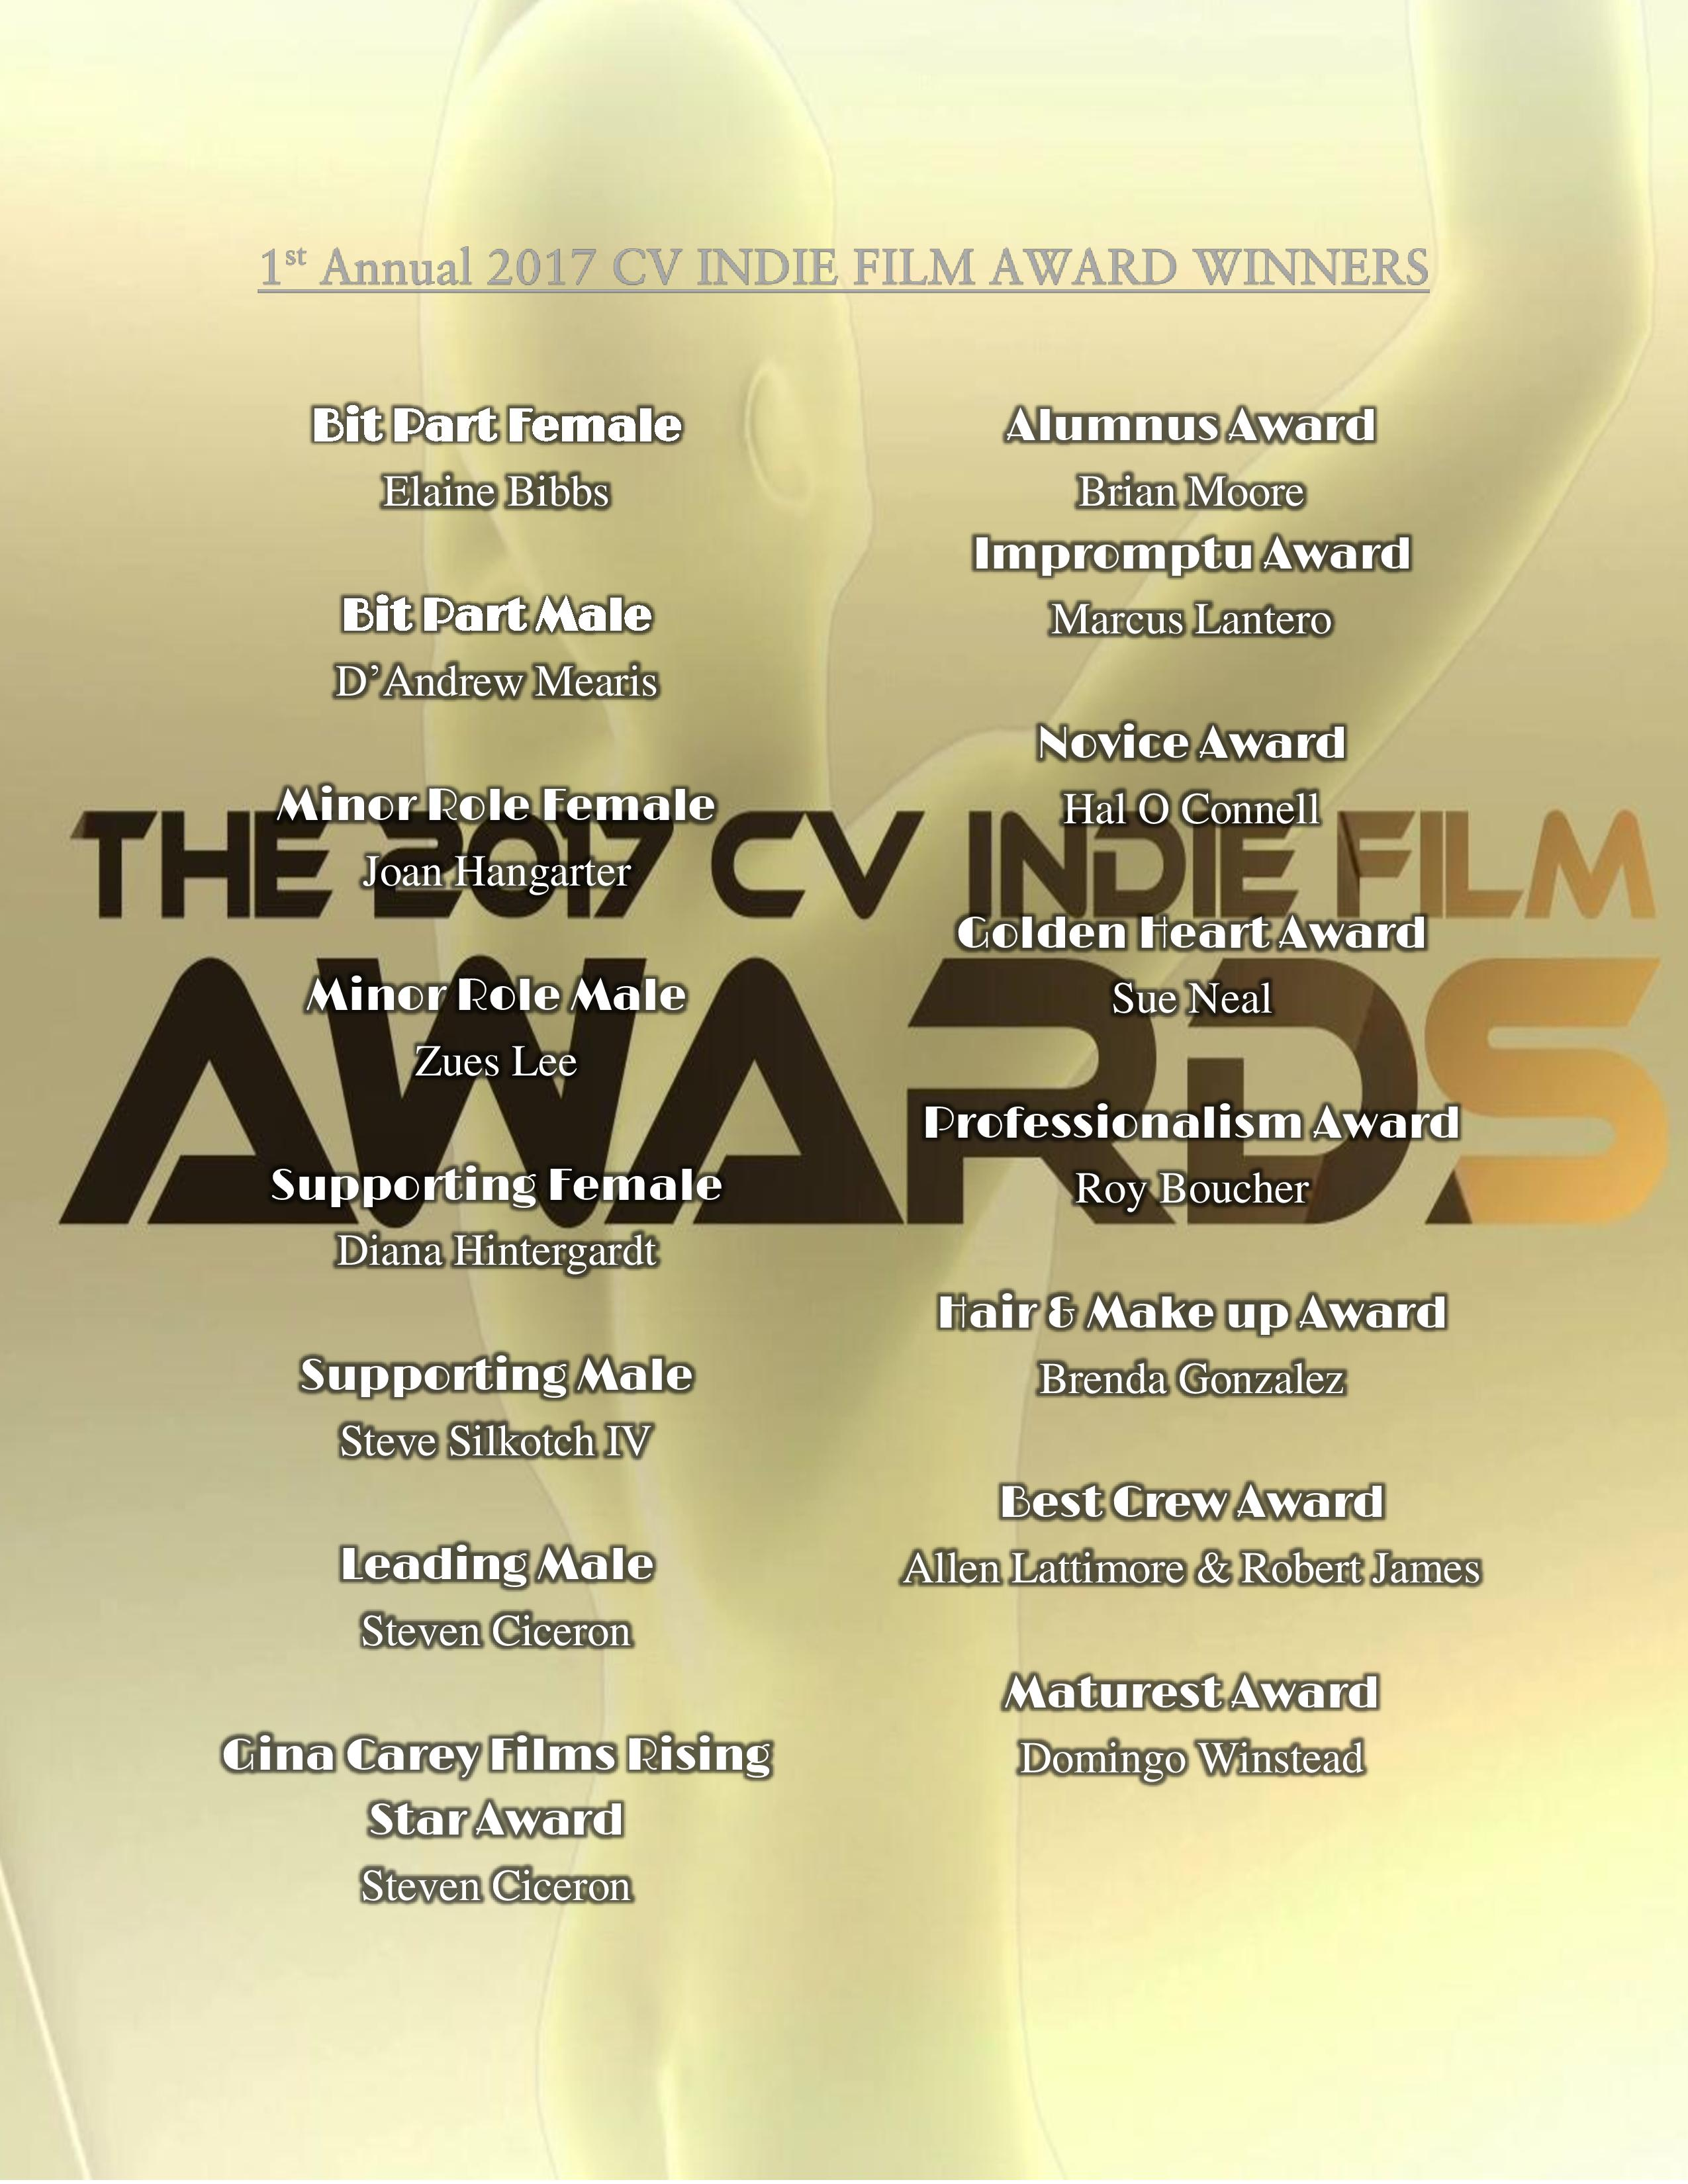 1st Annual 2017 CV INDIE FILM AWARD WINNERS-page-001